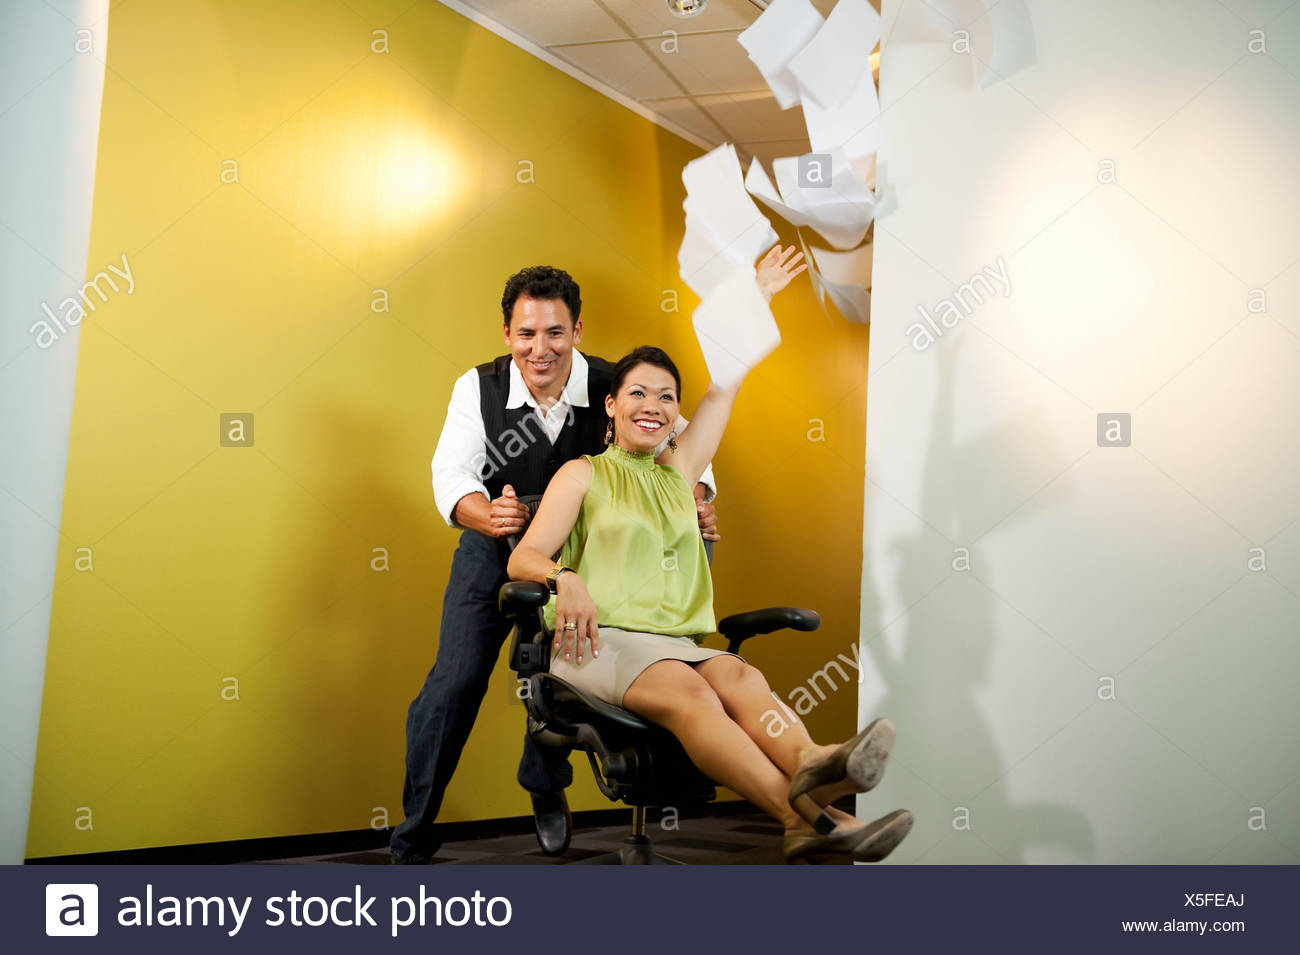 Office workers having fun - Stock Image